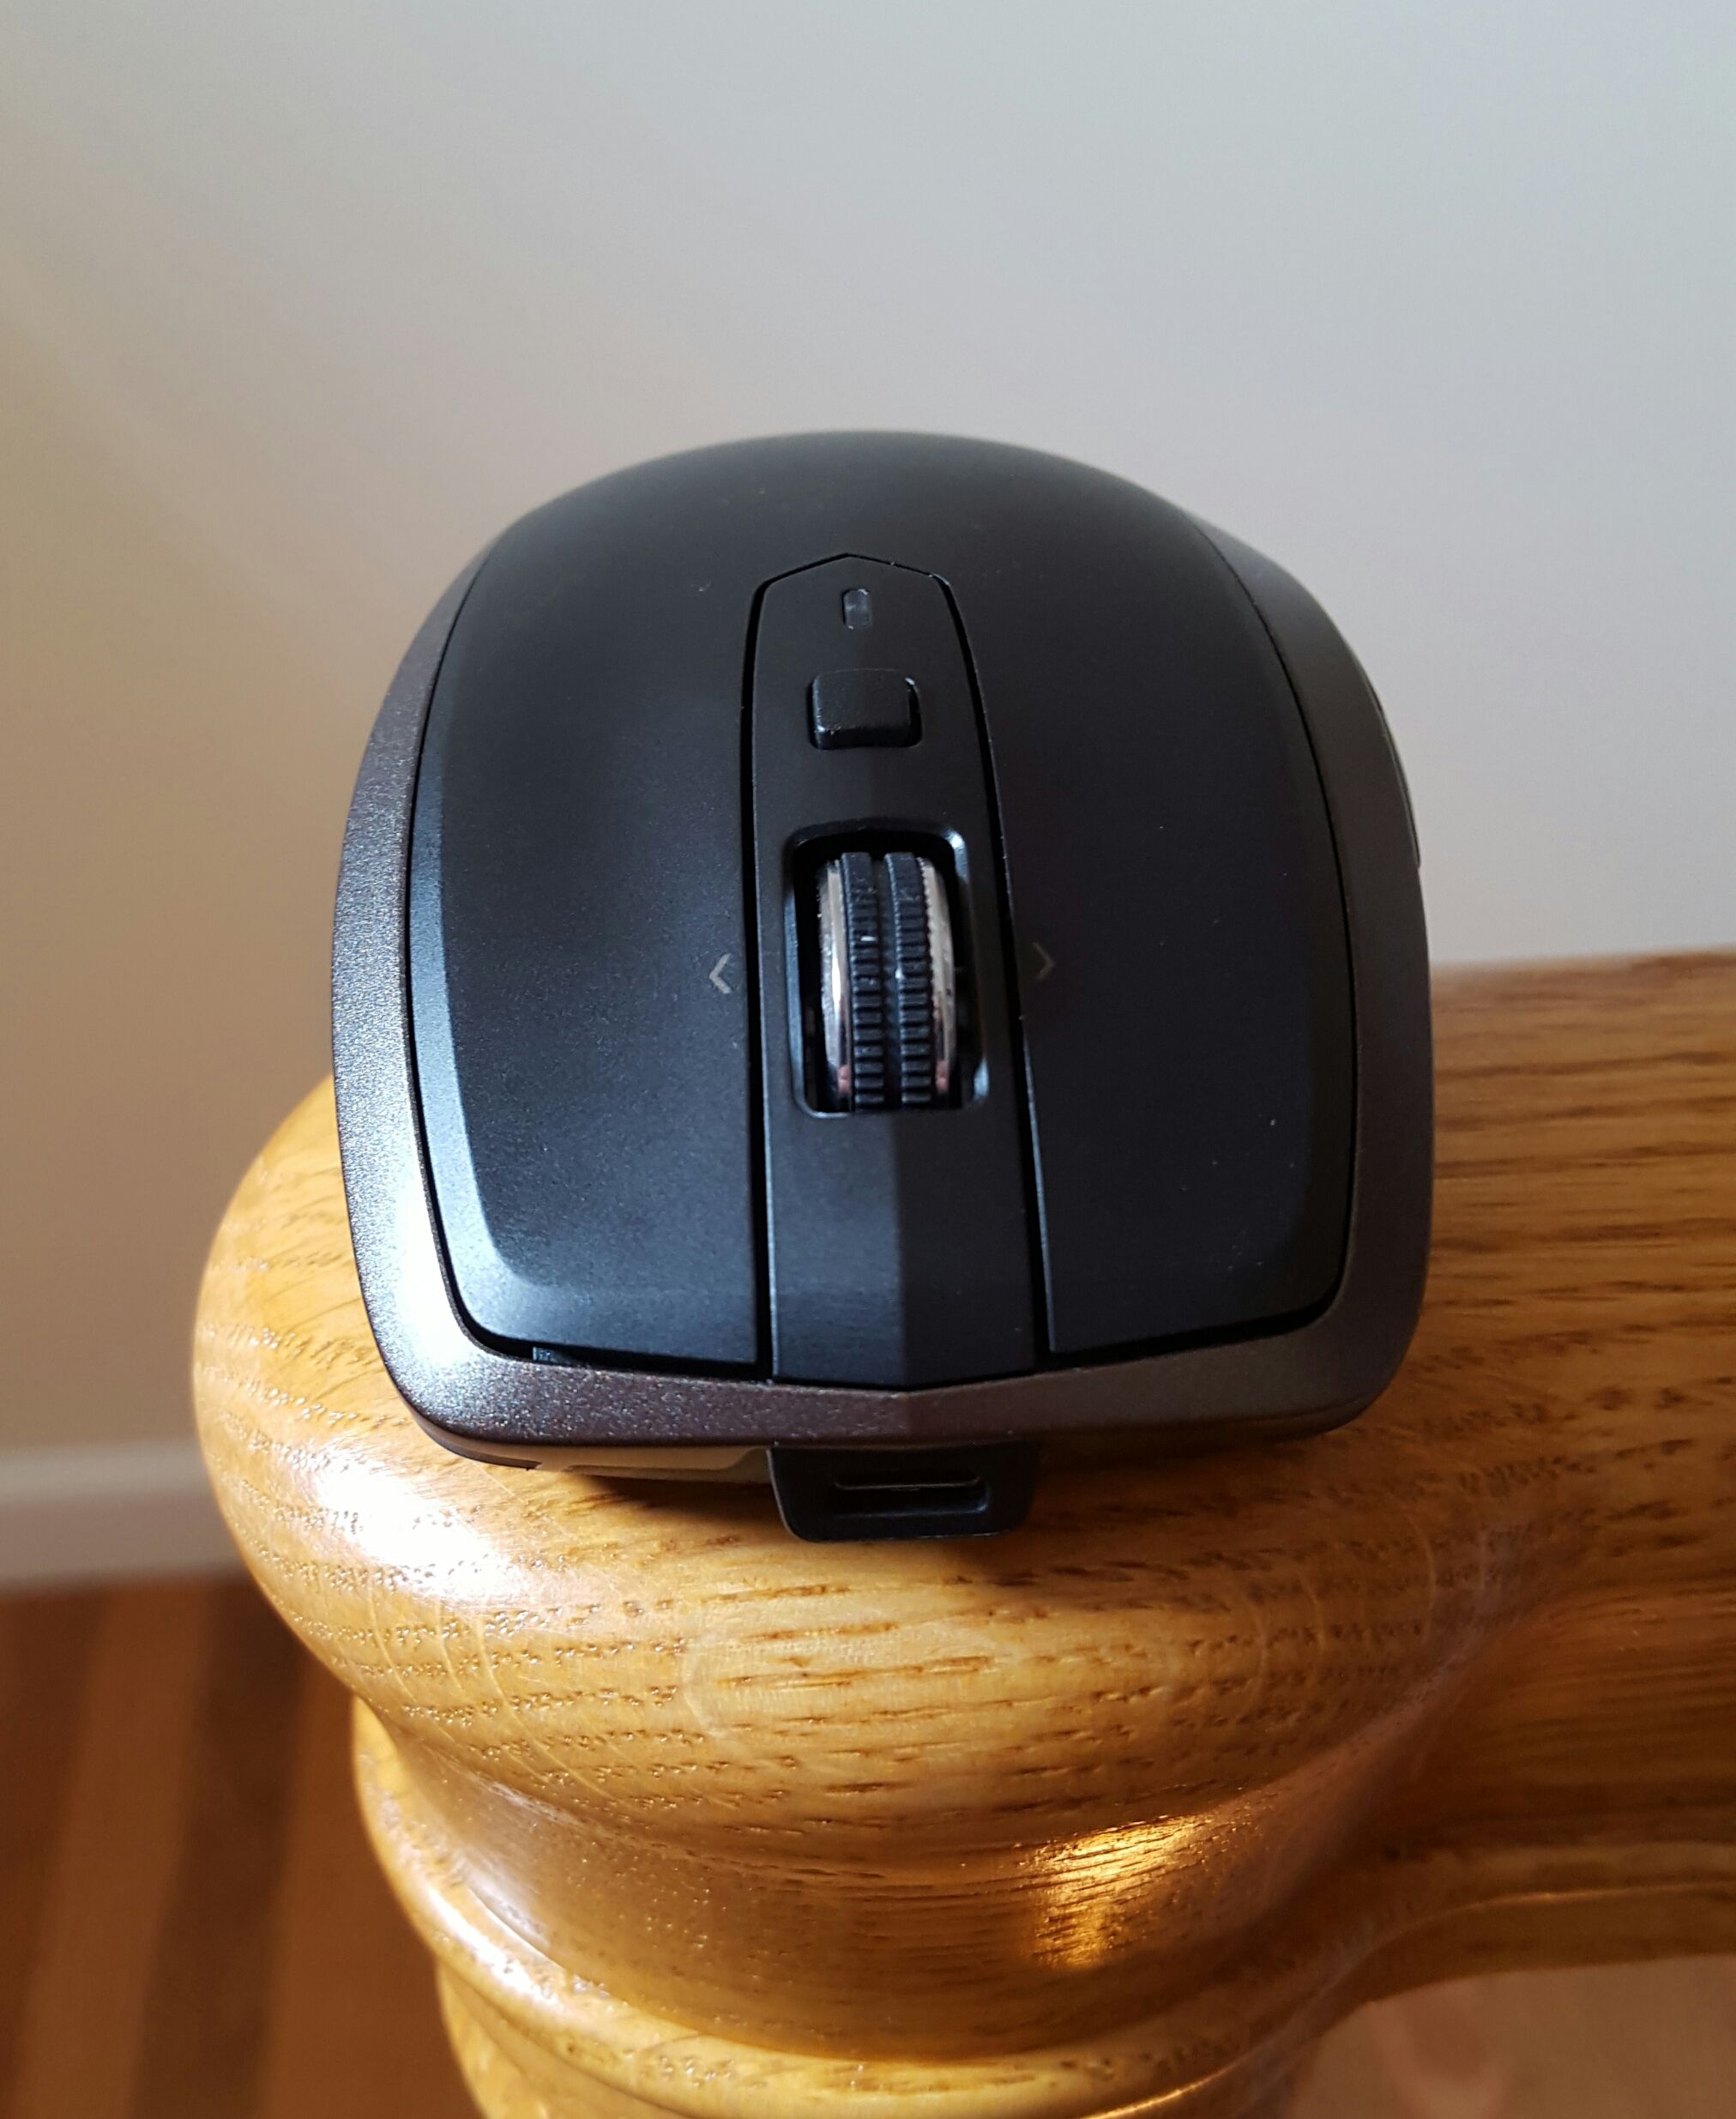 Logitech MX Anywhere 2 — the portable mouse of your dreams